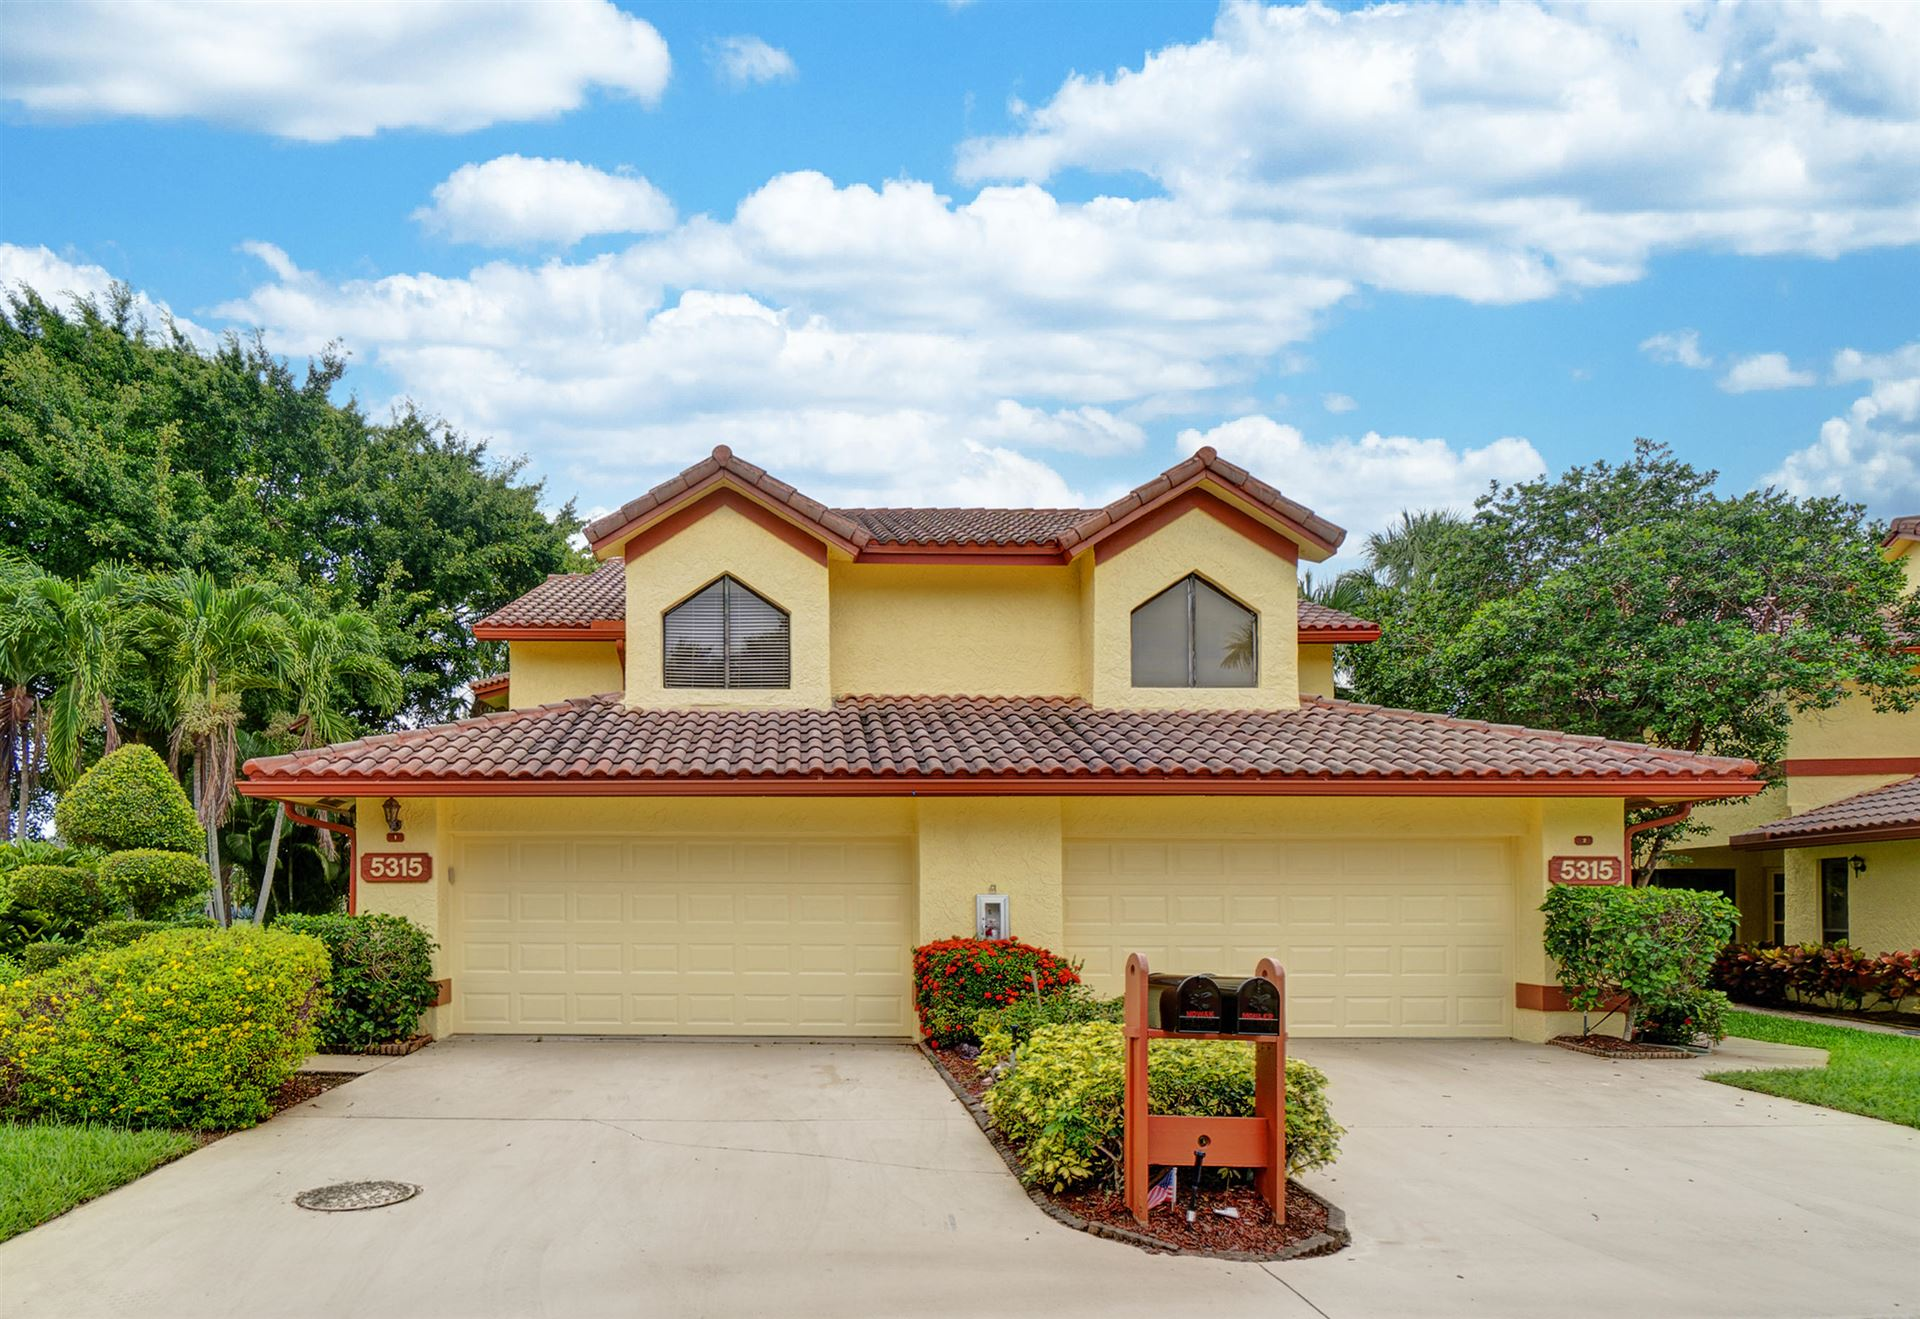 5315 10th Fairway Drive #1, Delray Beach, FL 33484 - #: RX-10629451